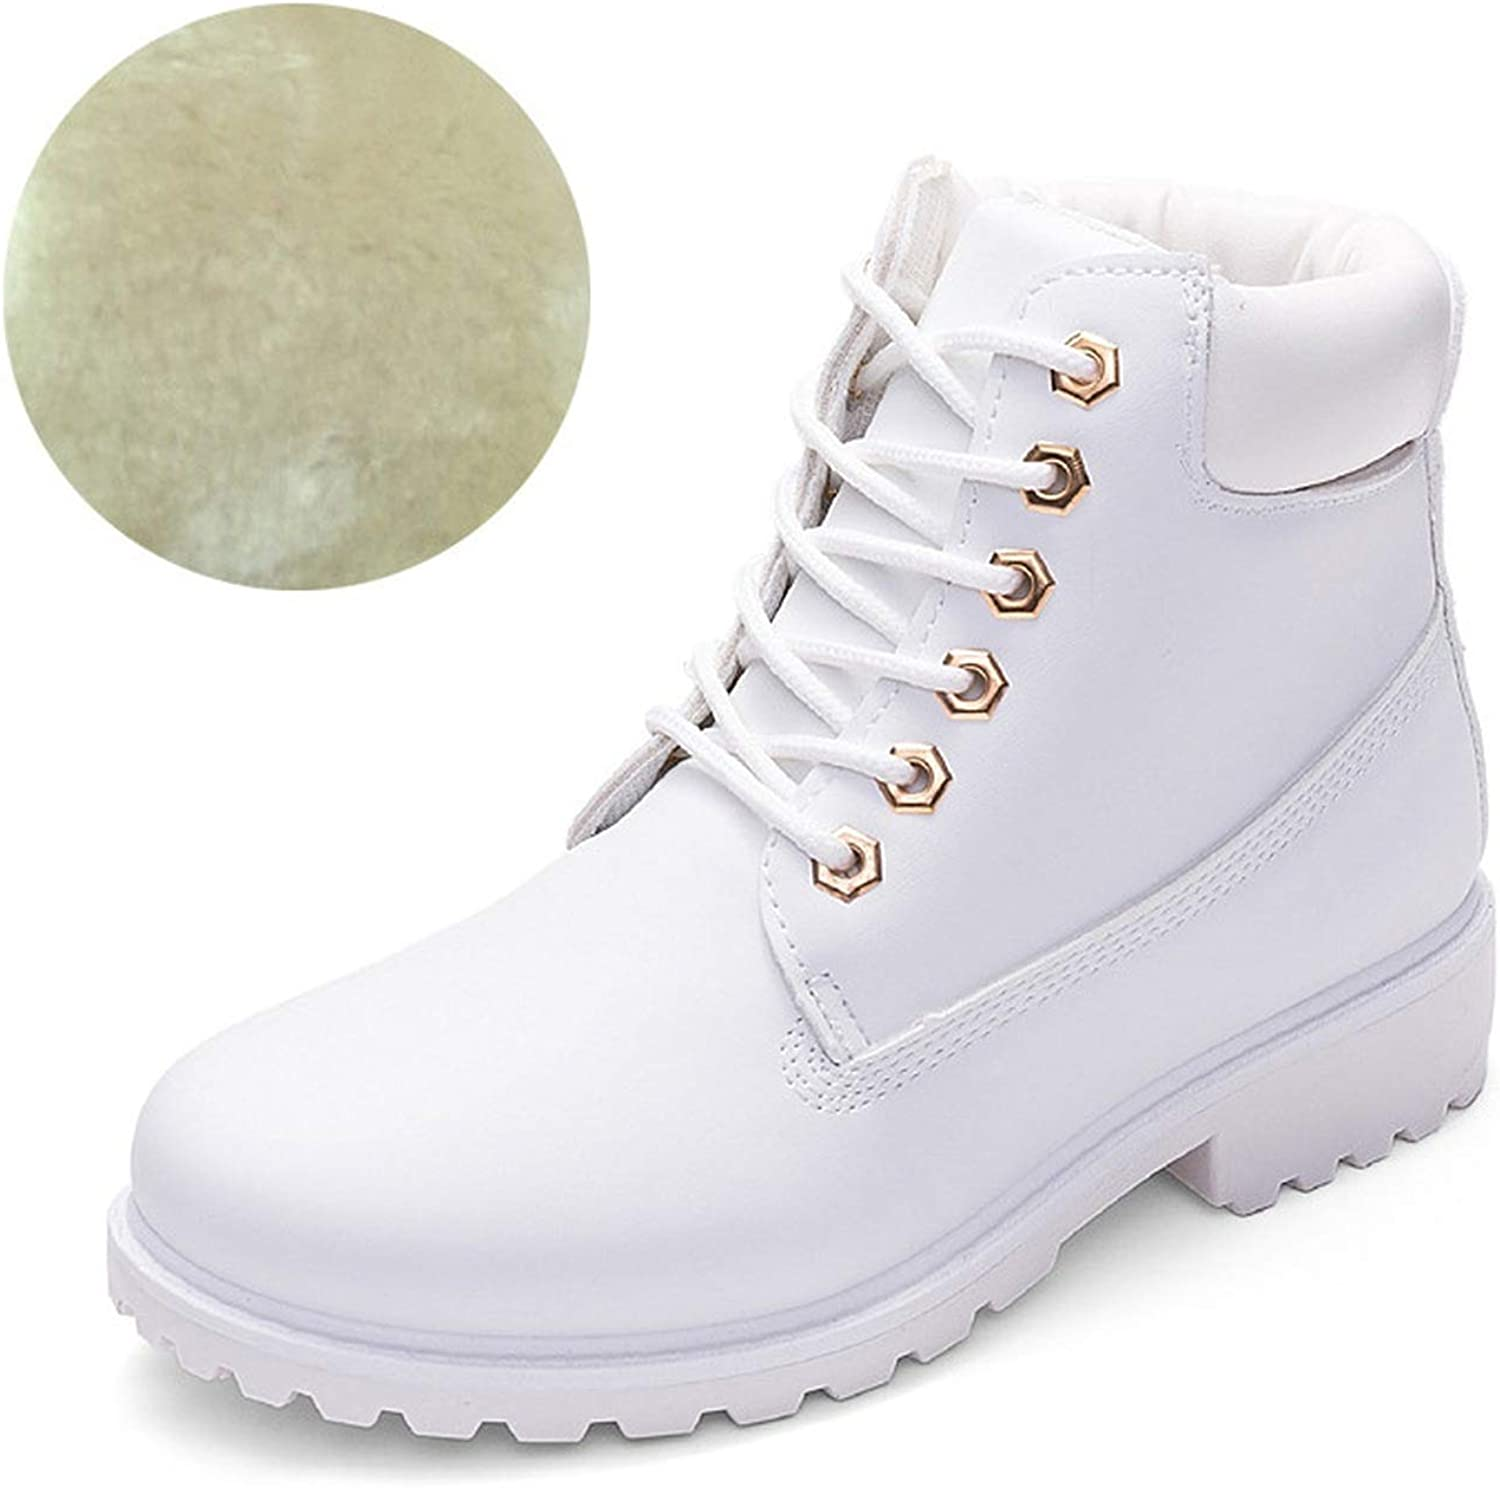 Pretty-sexy-toys Autumn Plush Snow Boots Women Wedges Knee-High Slip-Resistant Boots Thermal Female Cotton-Padded shoes Warm Size White with Fur,6.5